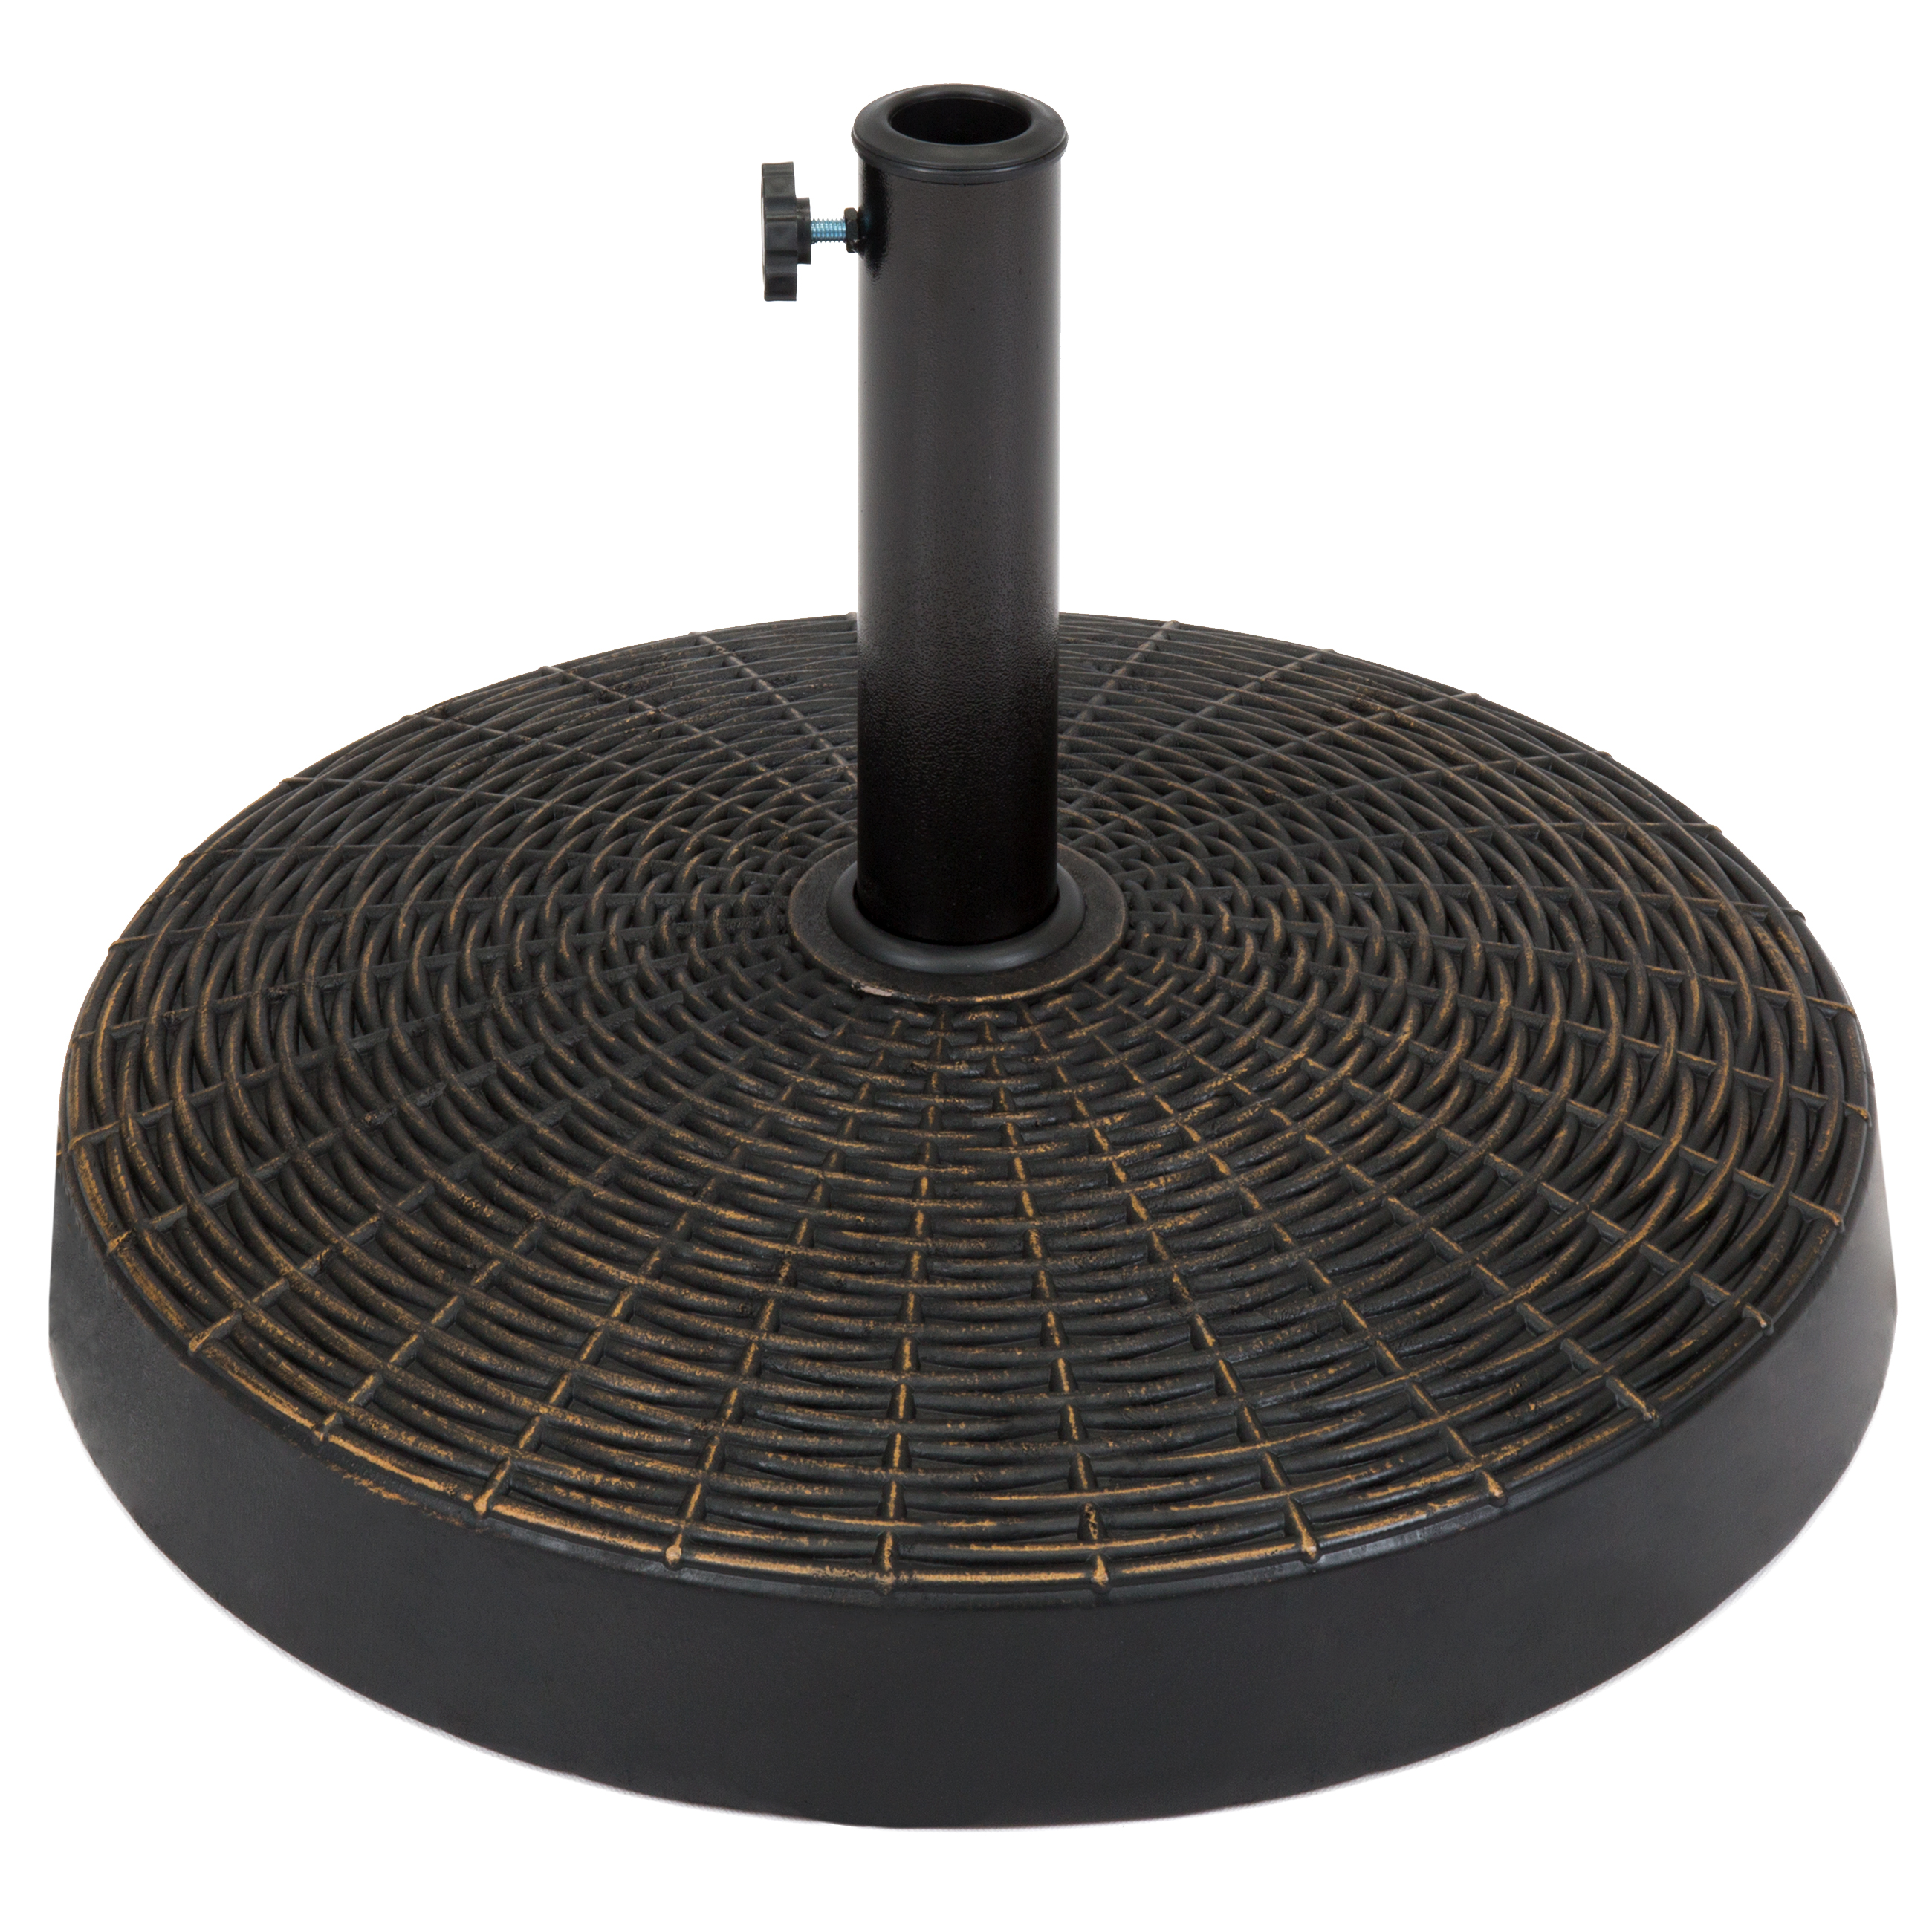 Best Choice Products Weaved Wicker Style Resin Patio Umbrella Base Stand - Blackened Bronze